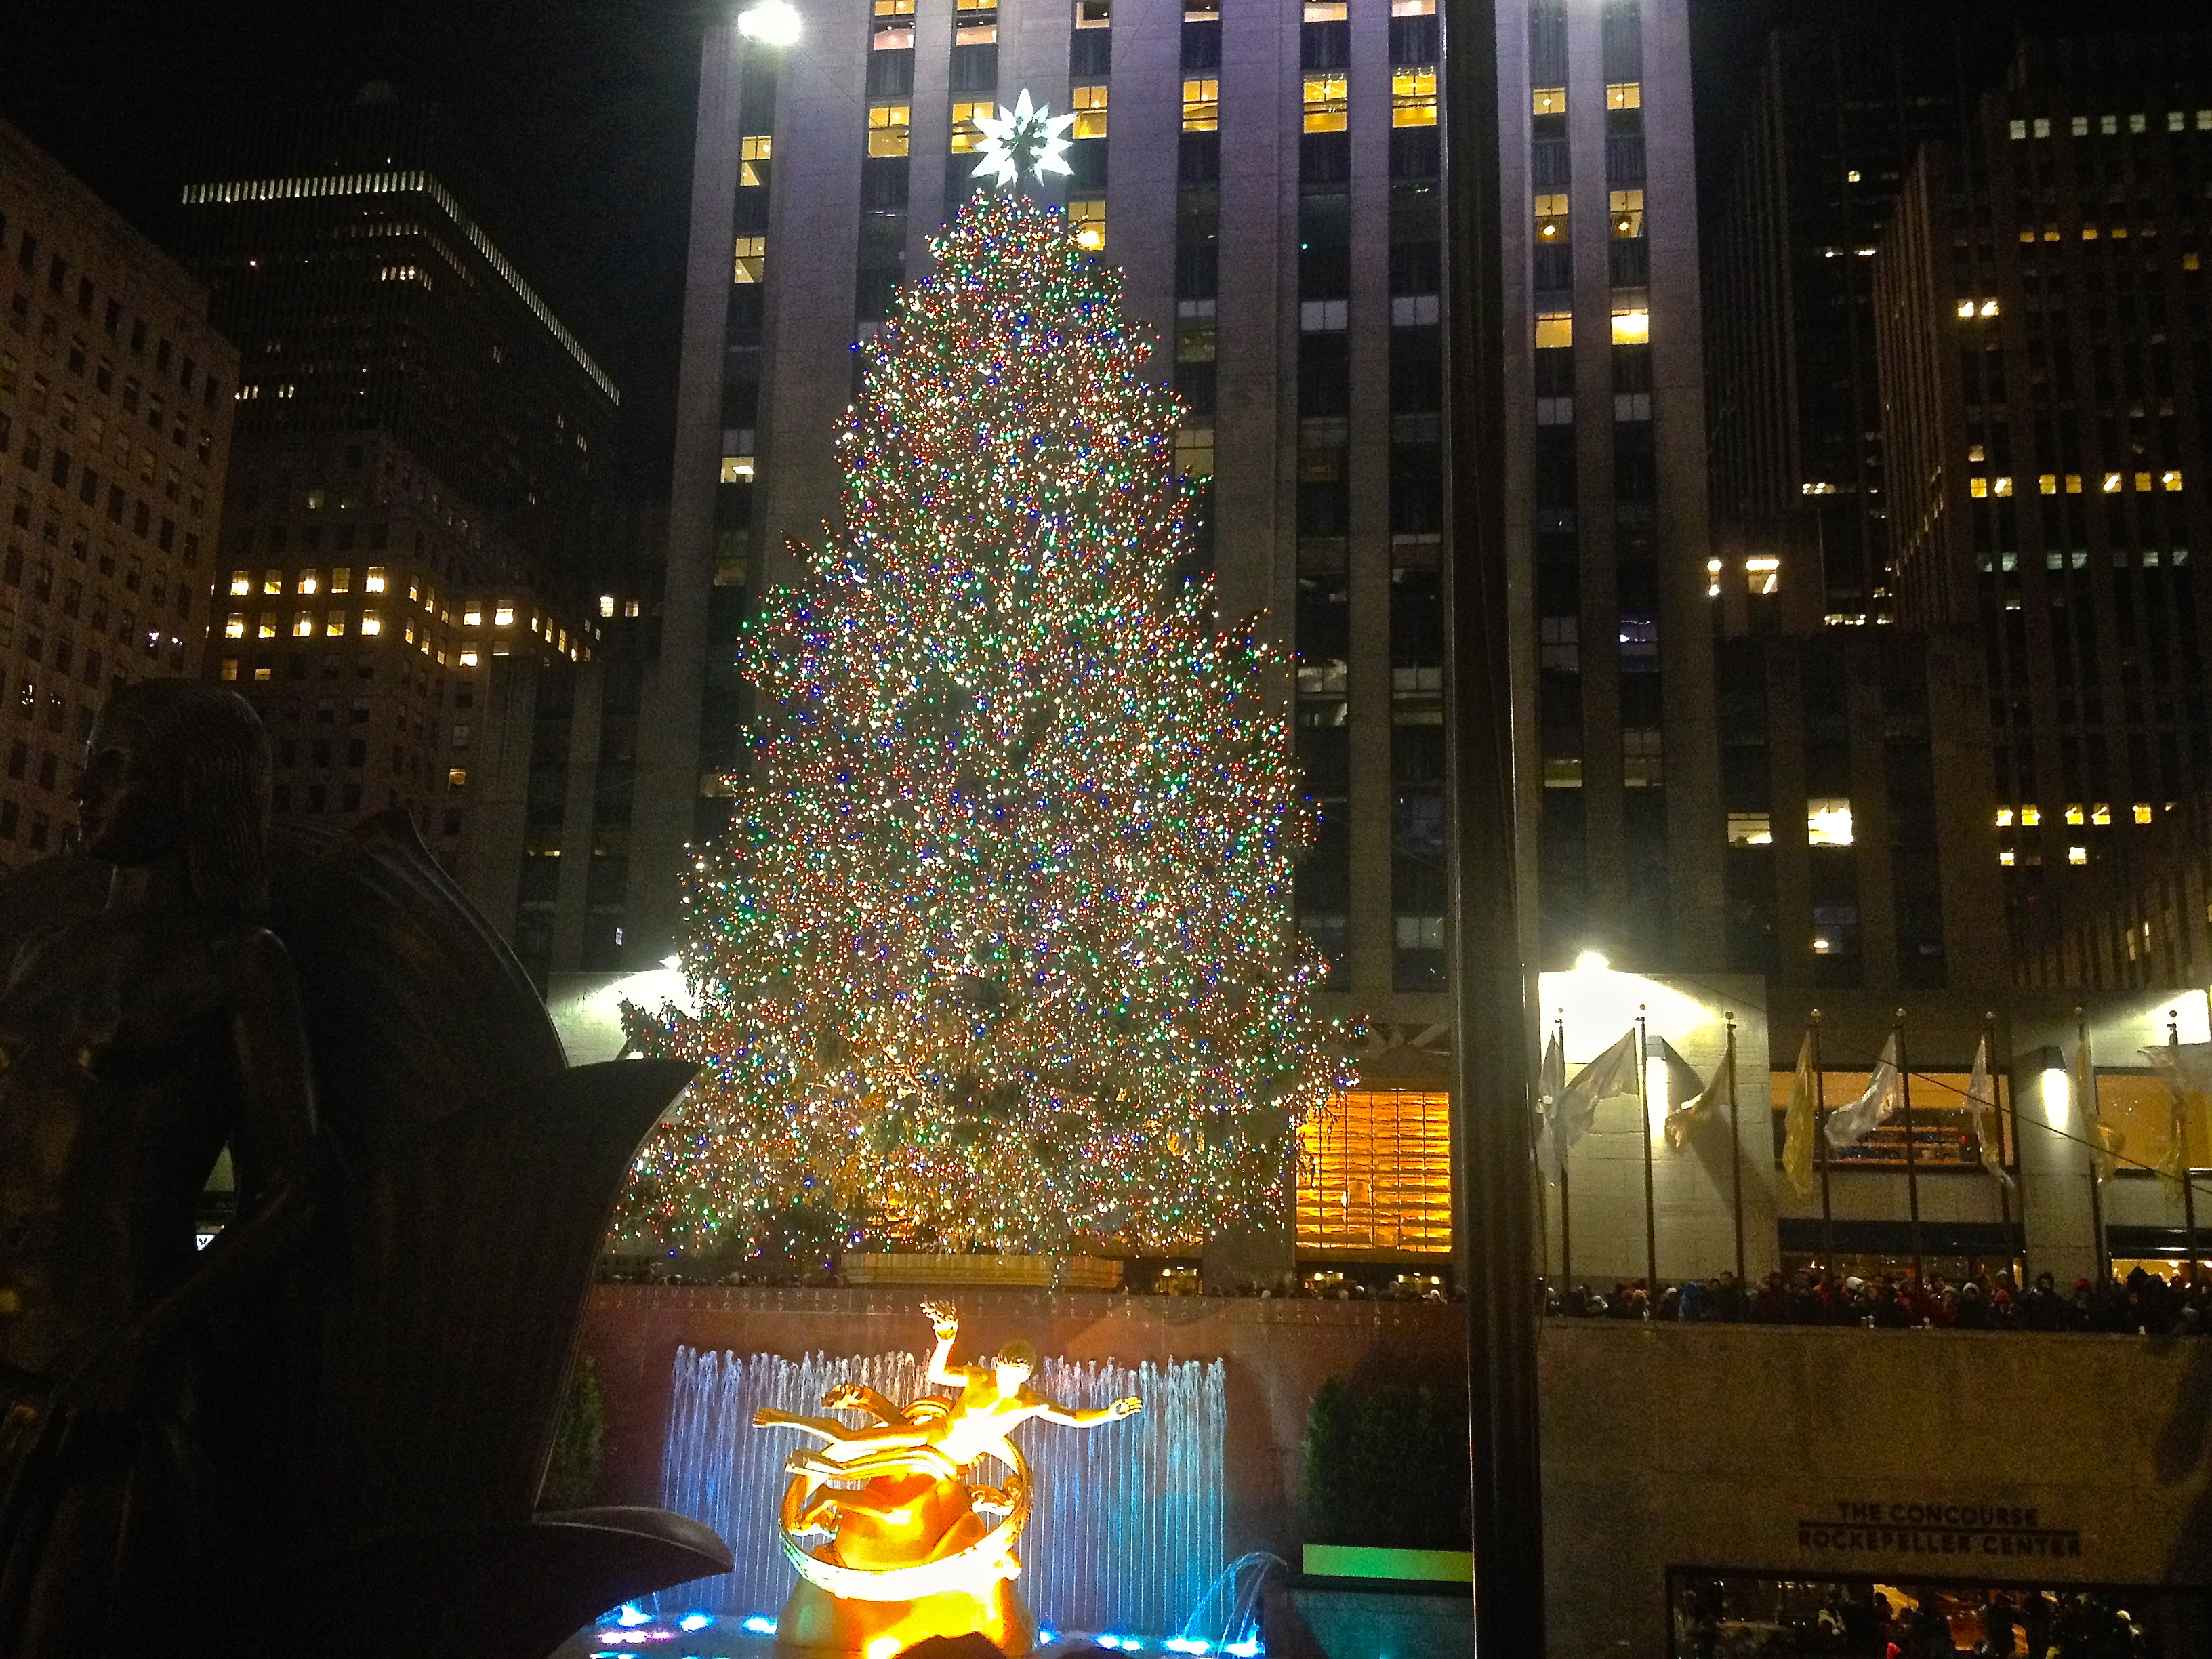 Camera Rockefeller Center : File:rockefeller center christmas tree.jpg wikimedia commons